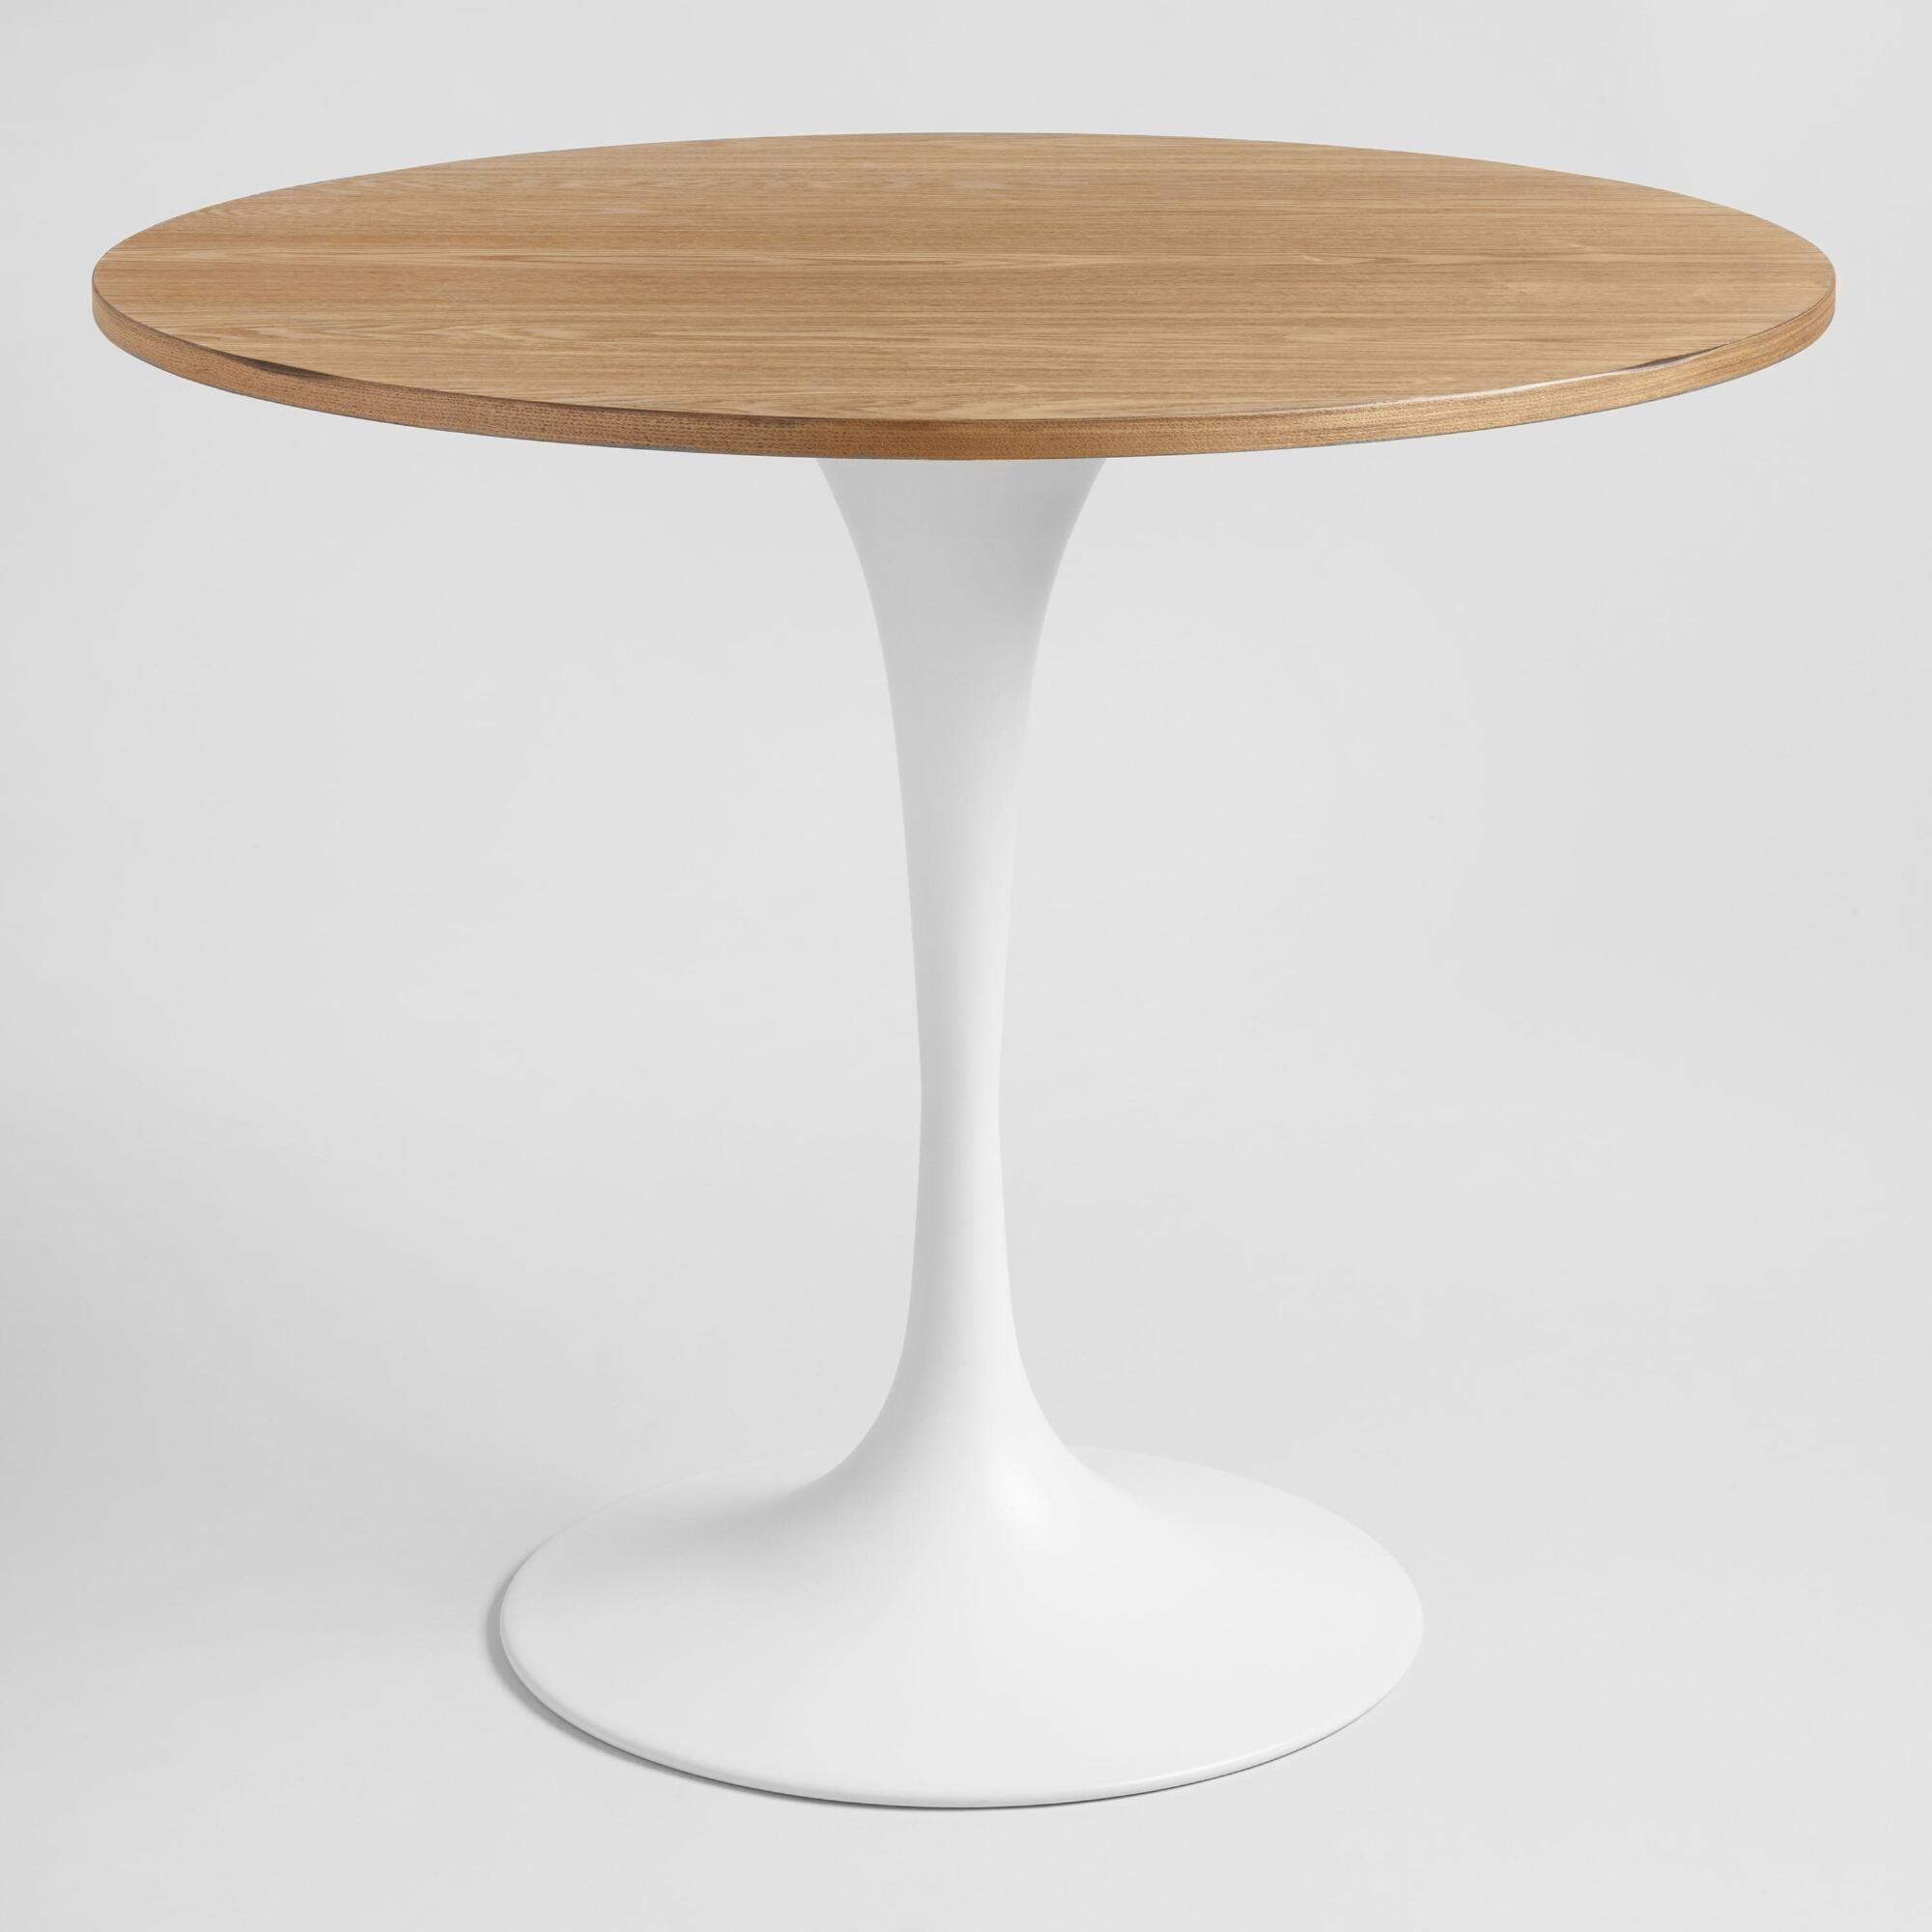 Wood and White Metal Leilani Tulip Dining Table - Small by World Market